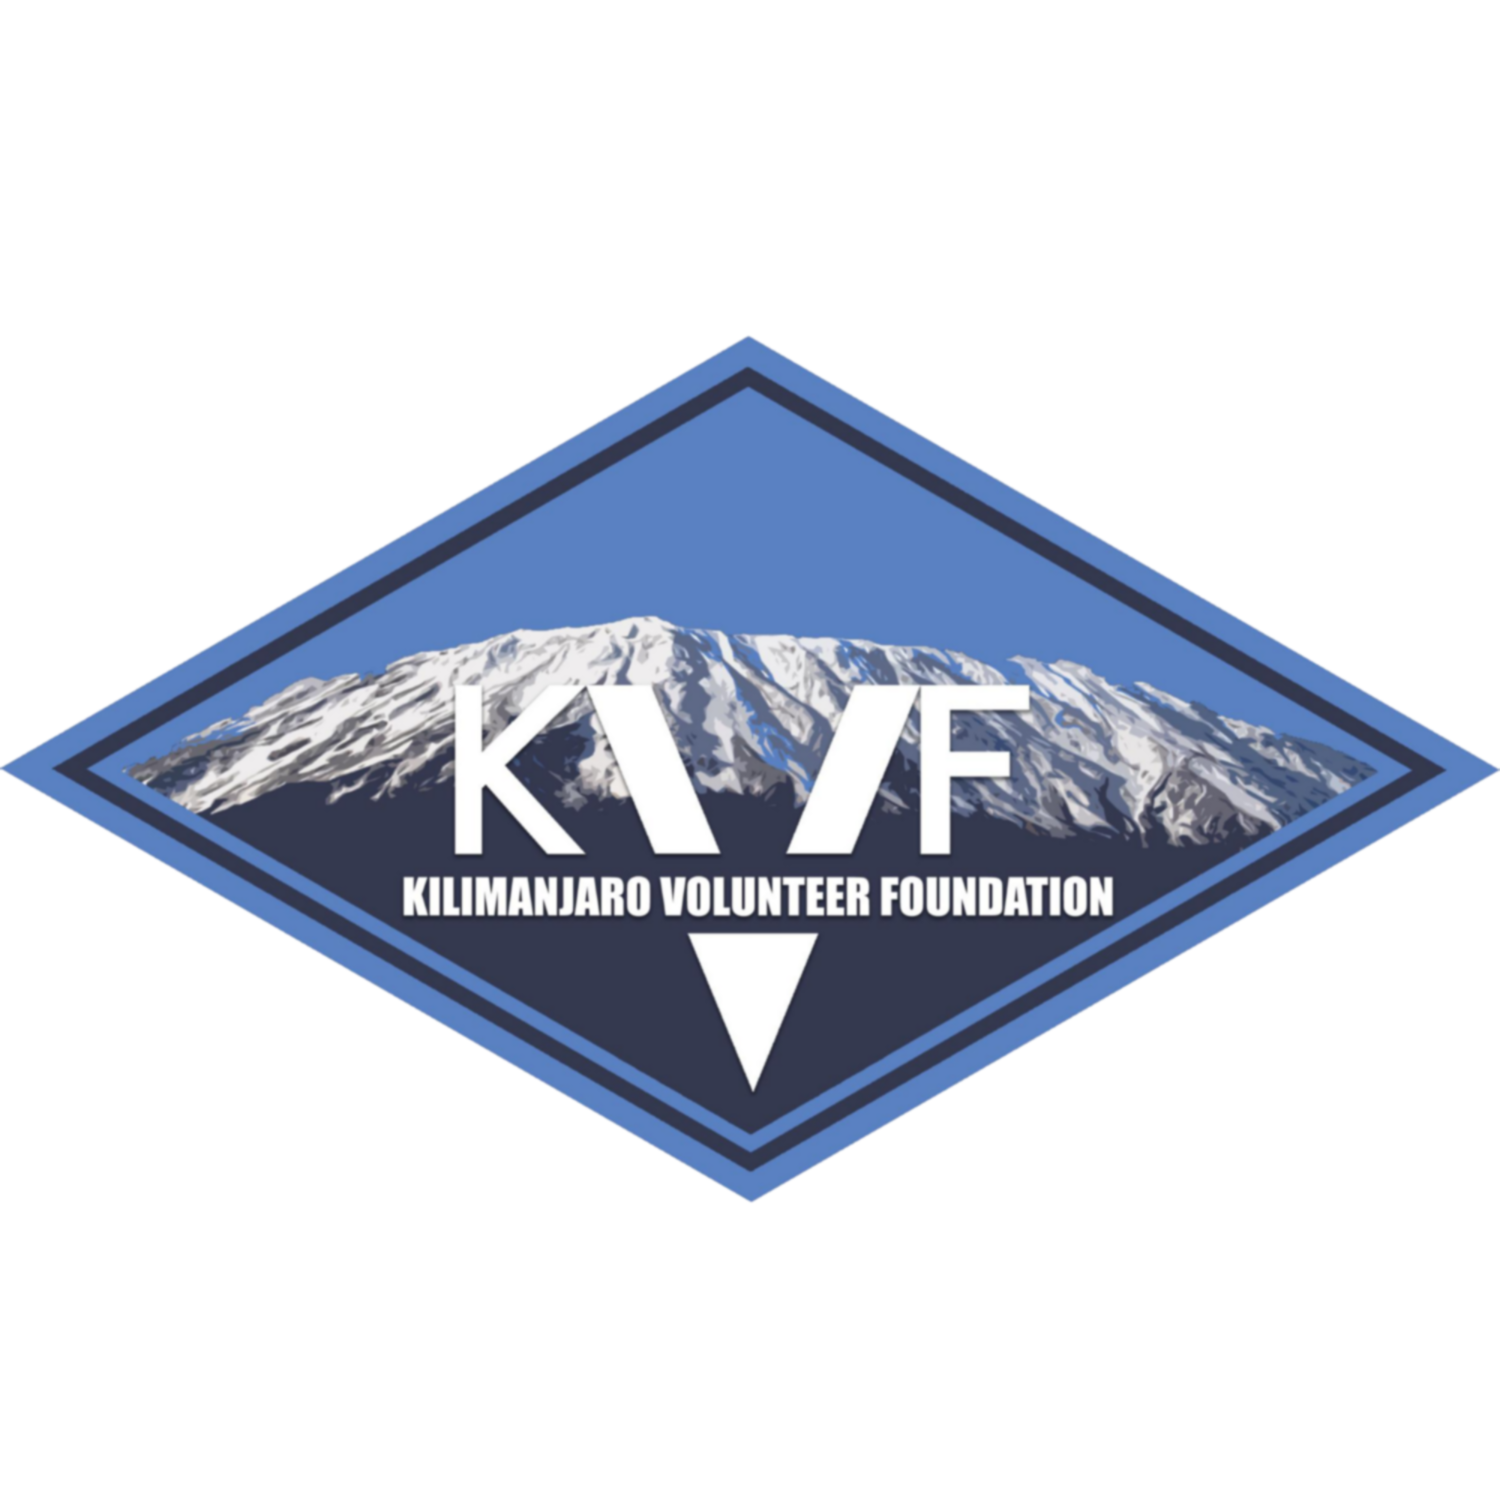 Kilimanjaro Volunteer Foundation